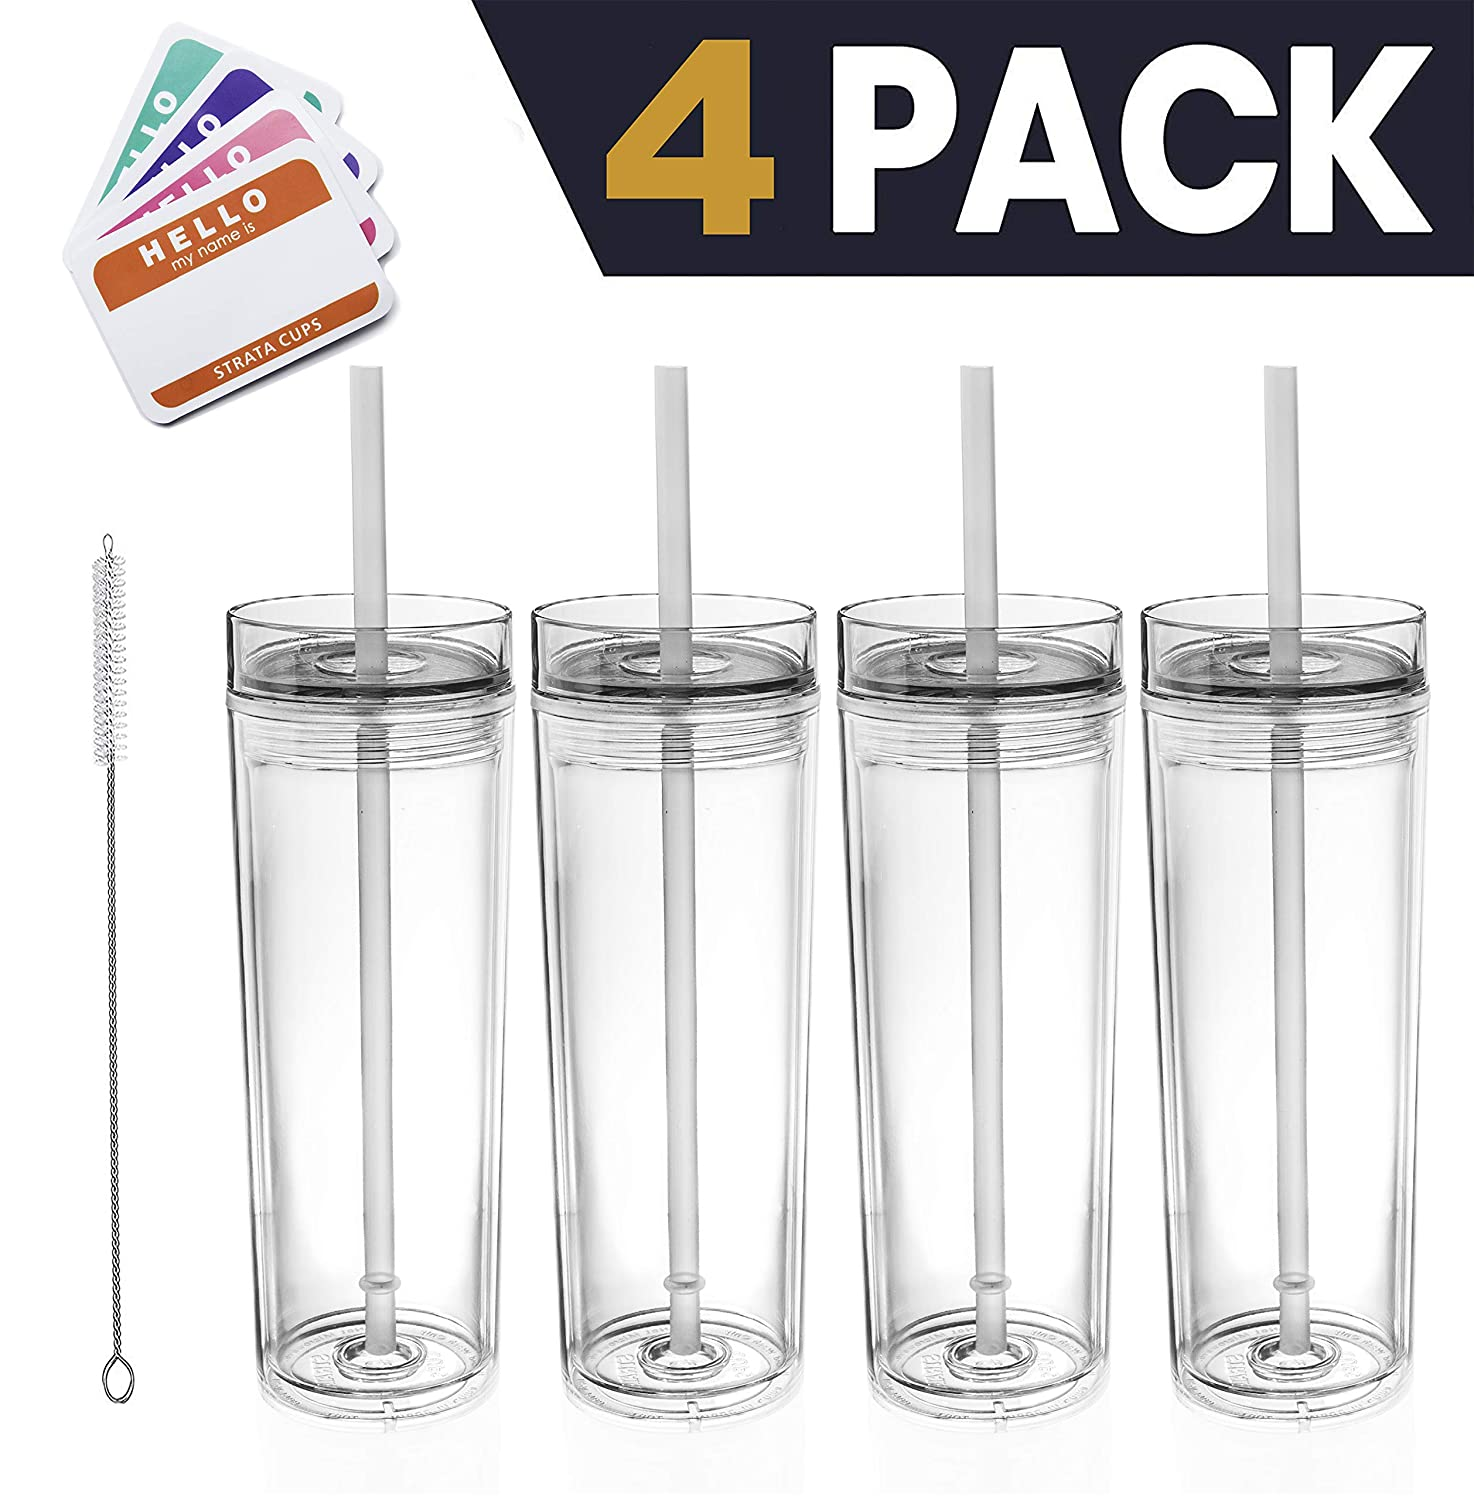 SKINNY TUMBLERS 4 Clear Acrylic Tumblers with Lids and Straws | 16oz Double Wall Clear Plastic Tumblers + FREE Straw Cleaner & Name Tags! Bulk Reusable Cups With Straw - Insulated Tumbler